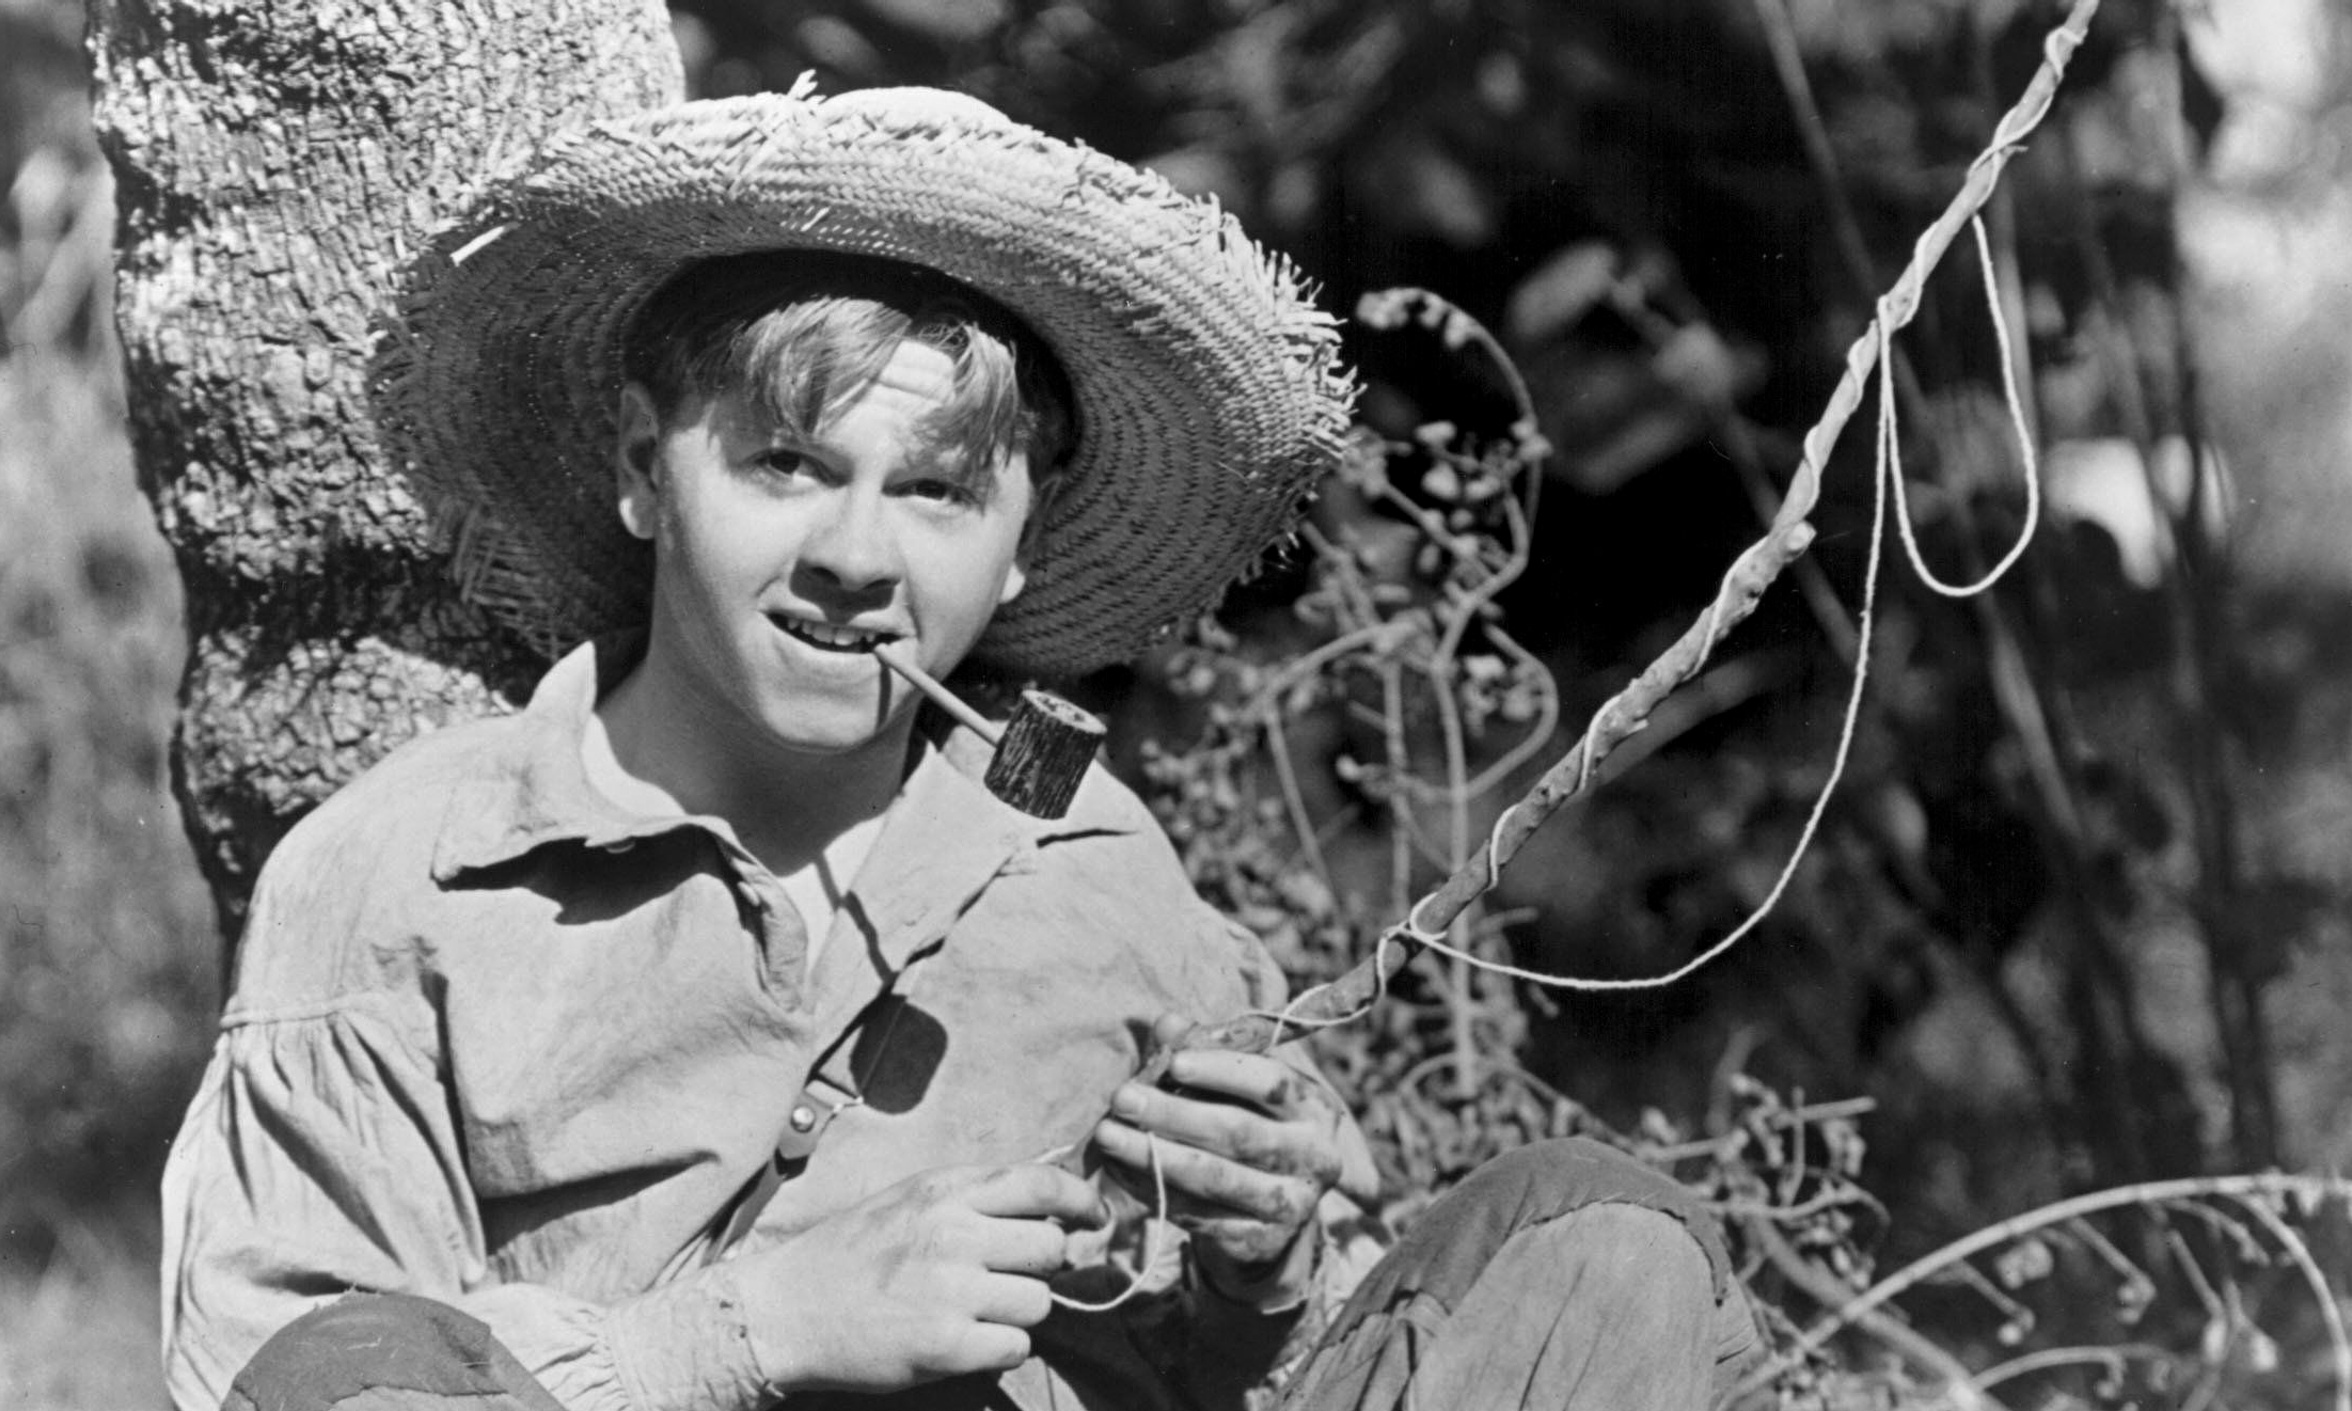 huckleberry finn is a rebel or a bad boy Use cliffsnotes' the adventures of huckleberry finn study miss watson tells huck he will go to the bad place huck sounds as a young, uneducated boy from.